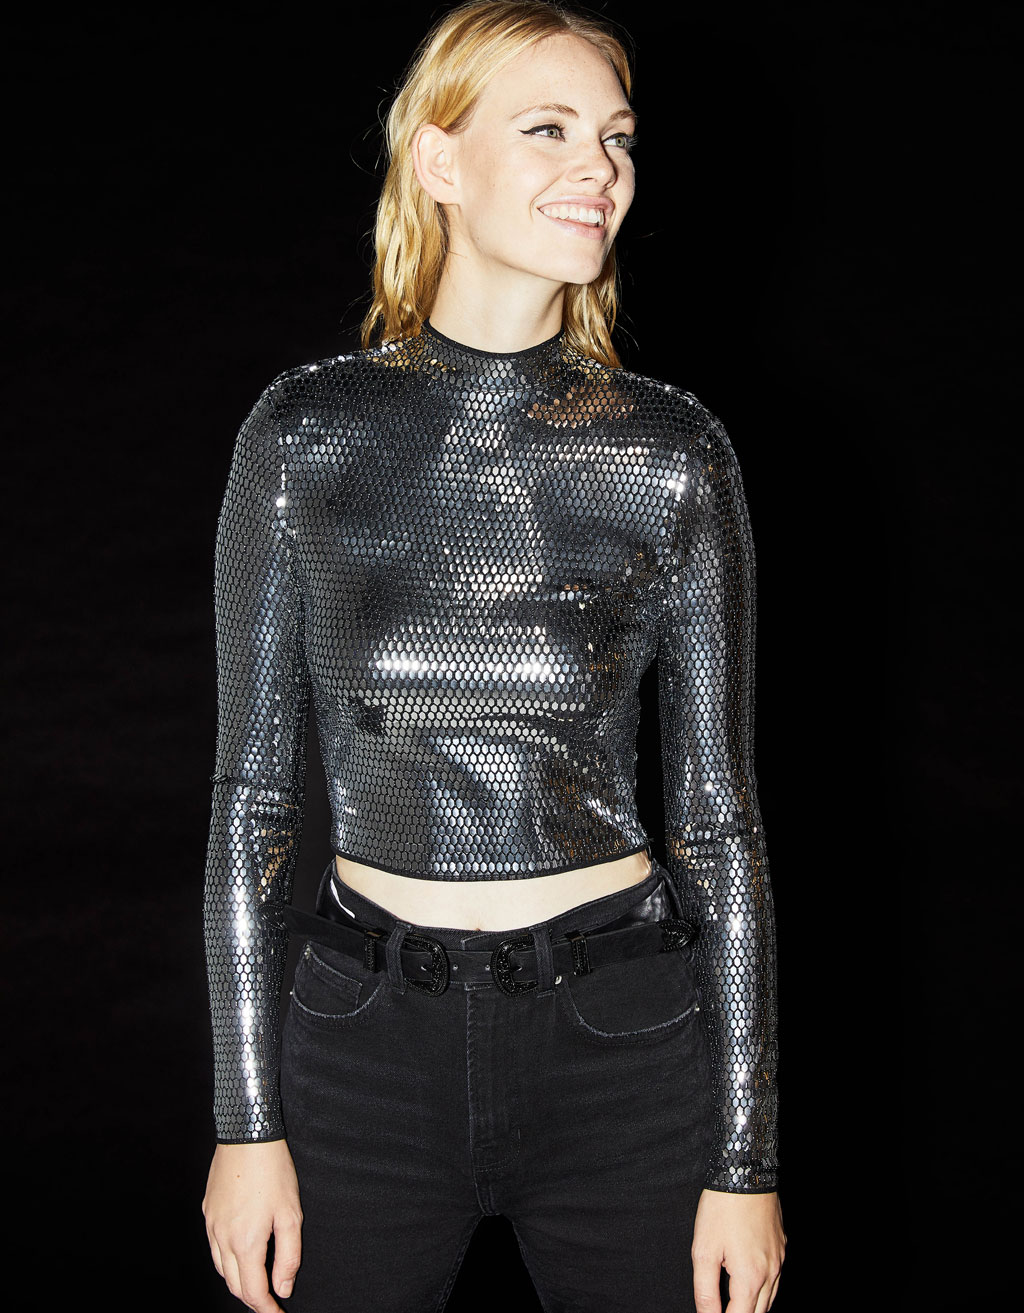 Cropped sweater with metallic effect